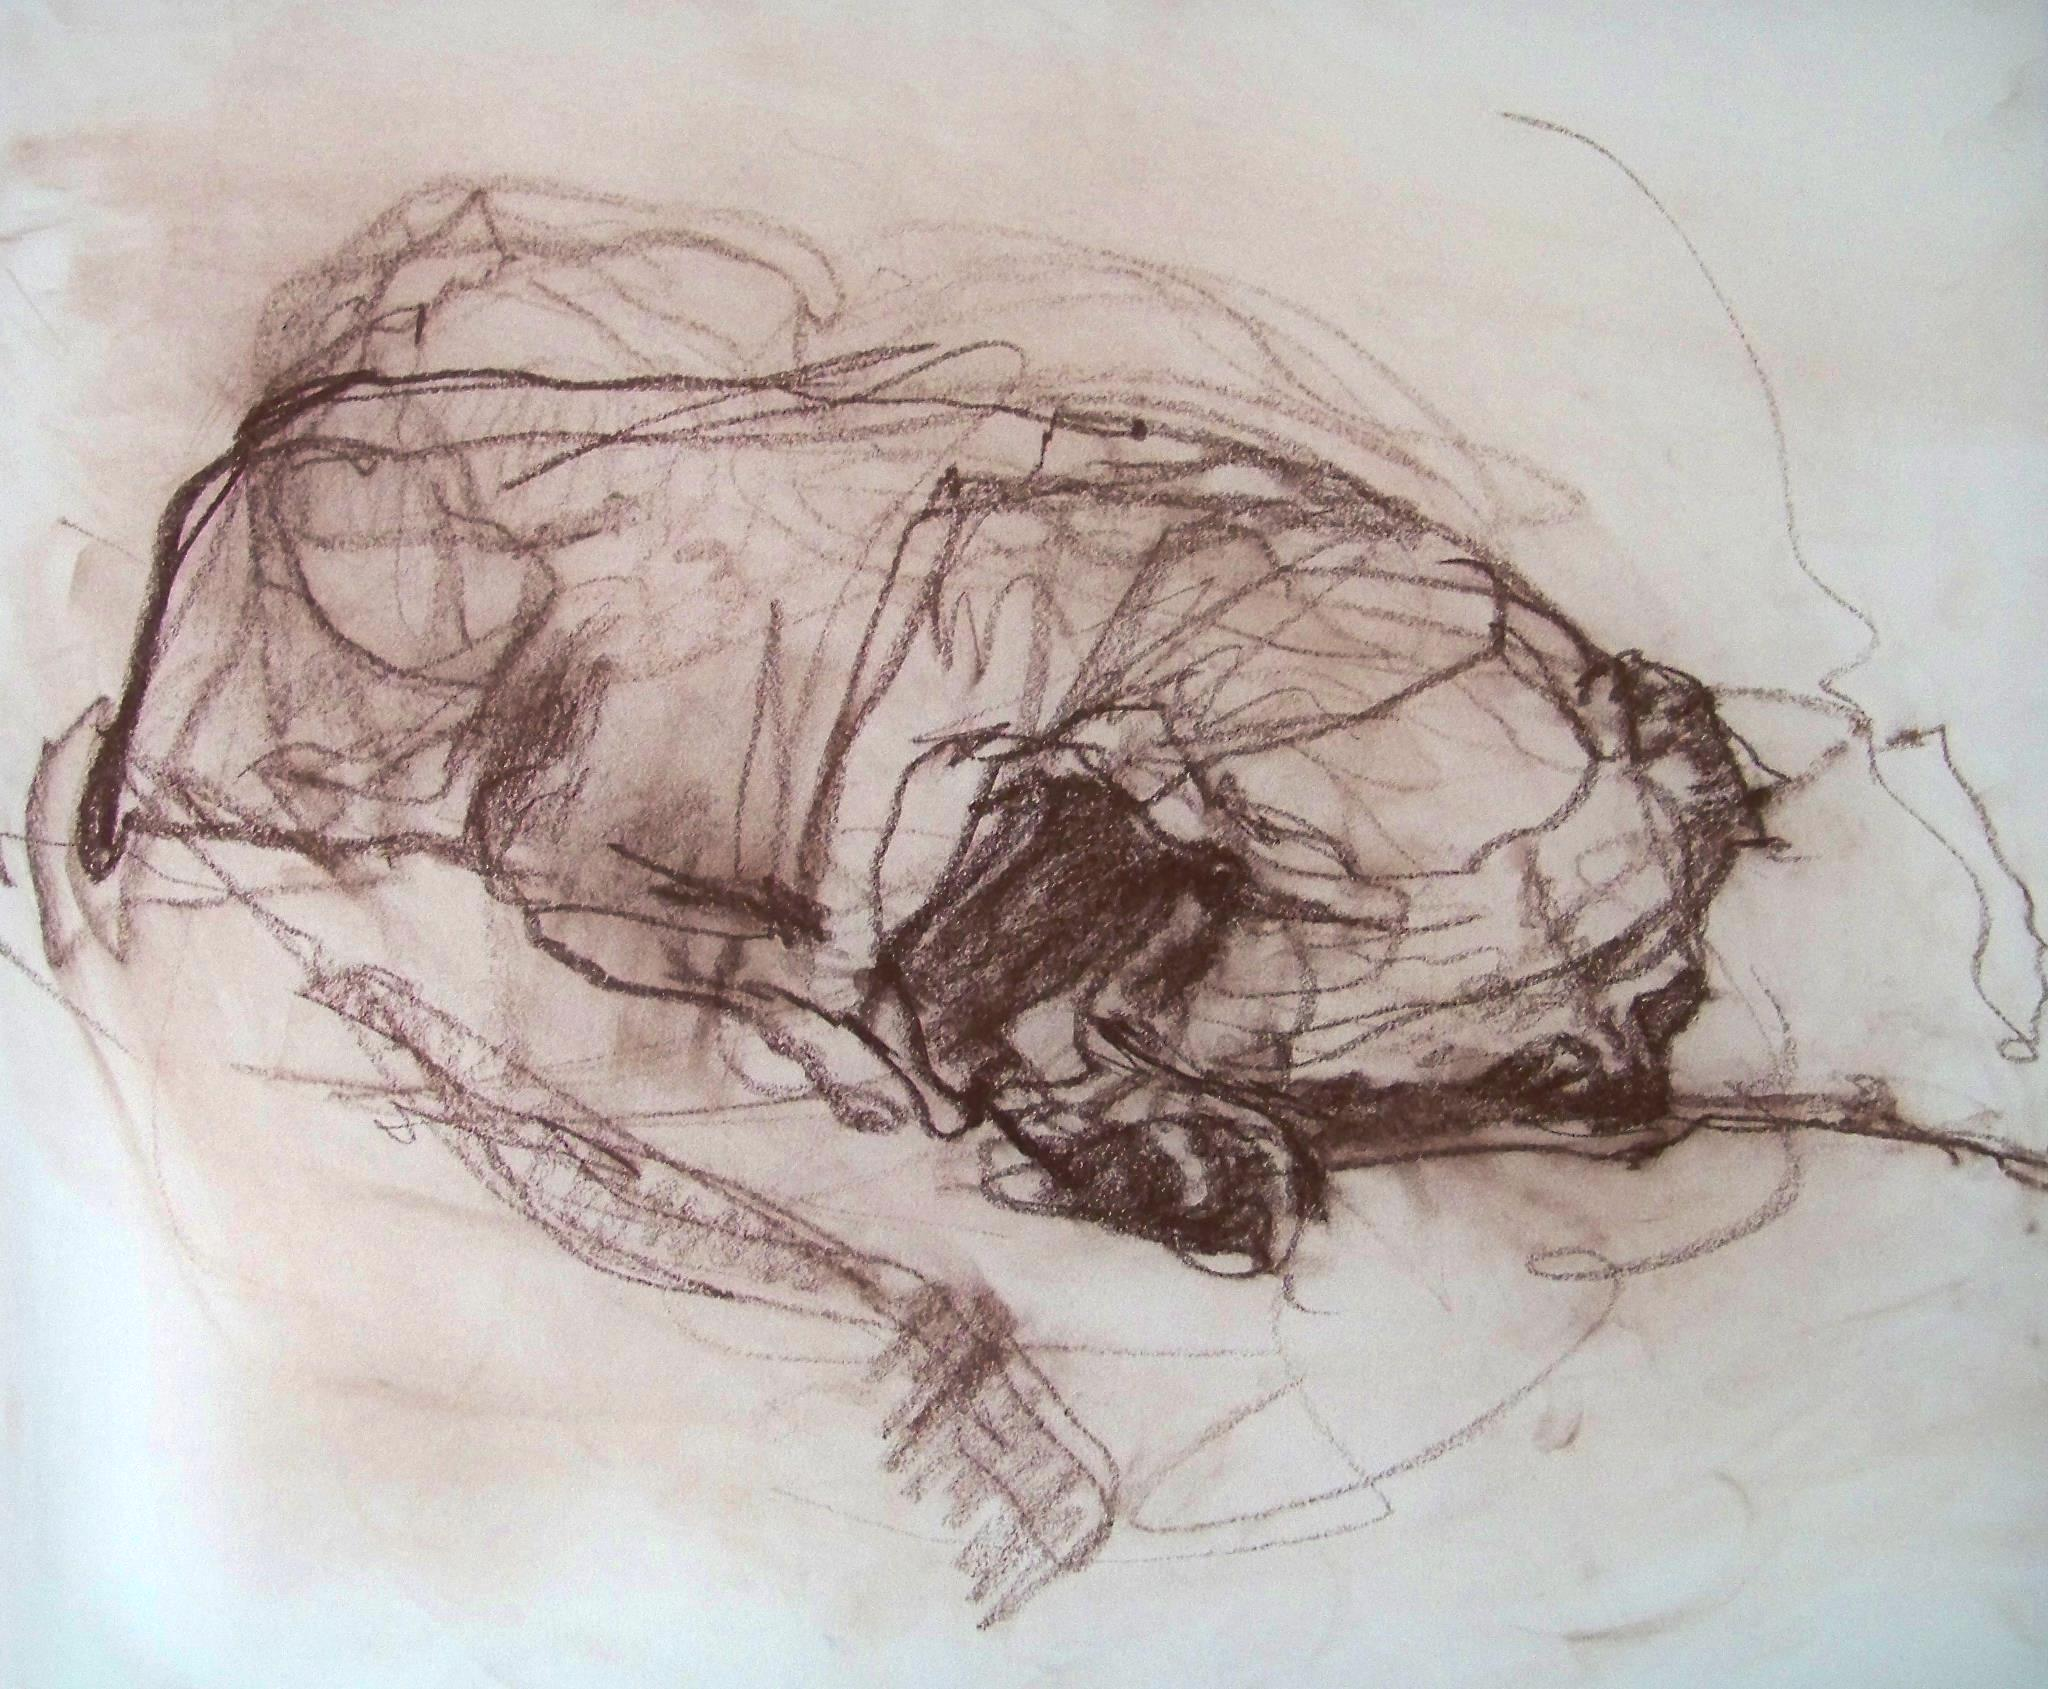 Sir Winston Justice of West Dry Creek, sleeping  Conte crayon on cream drawing paper 2016